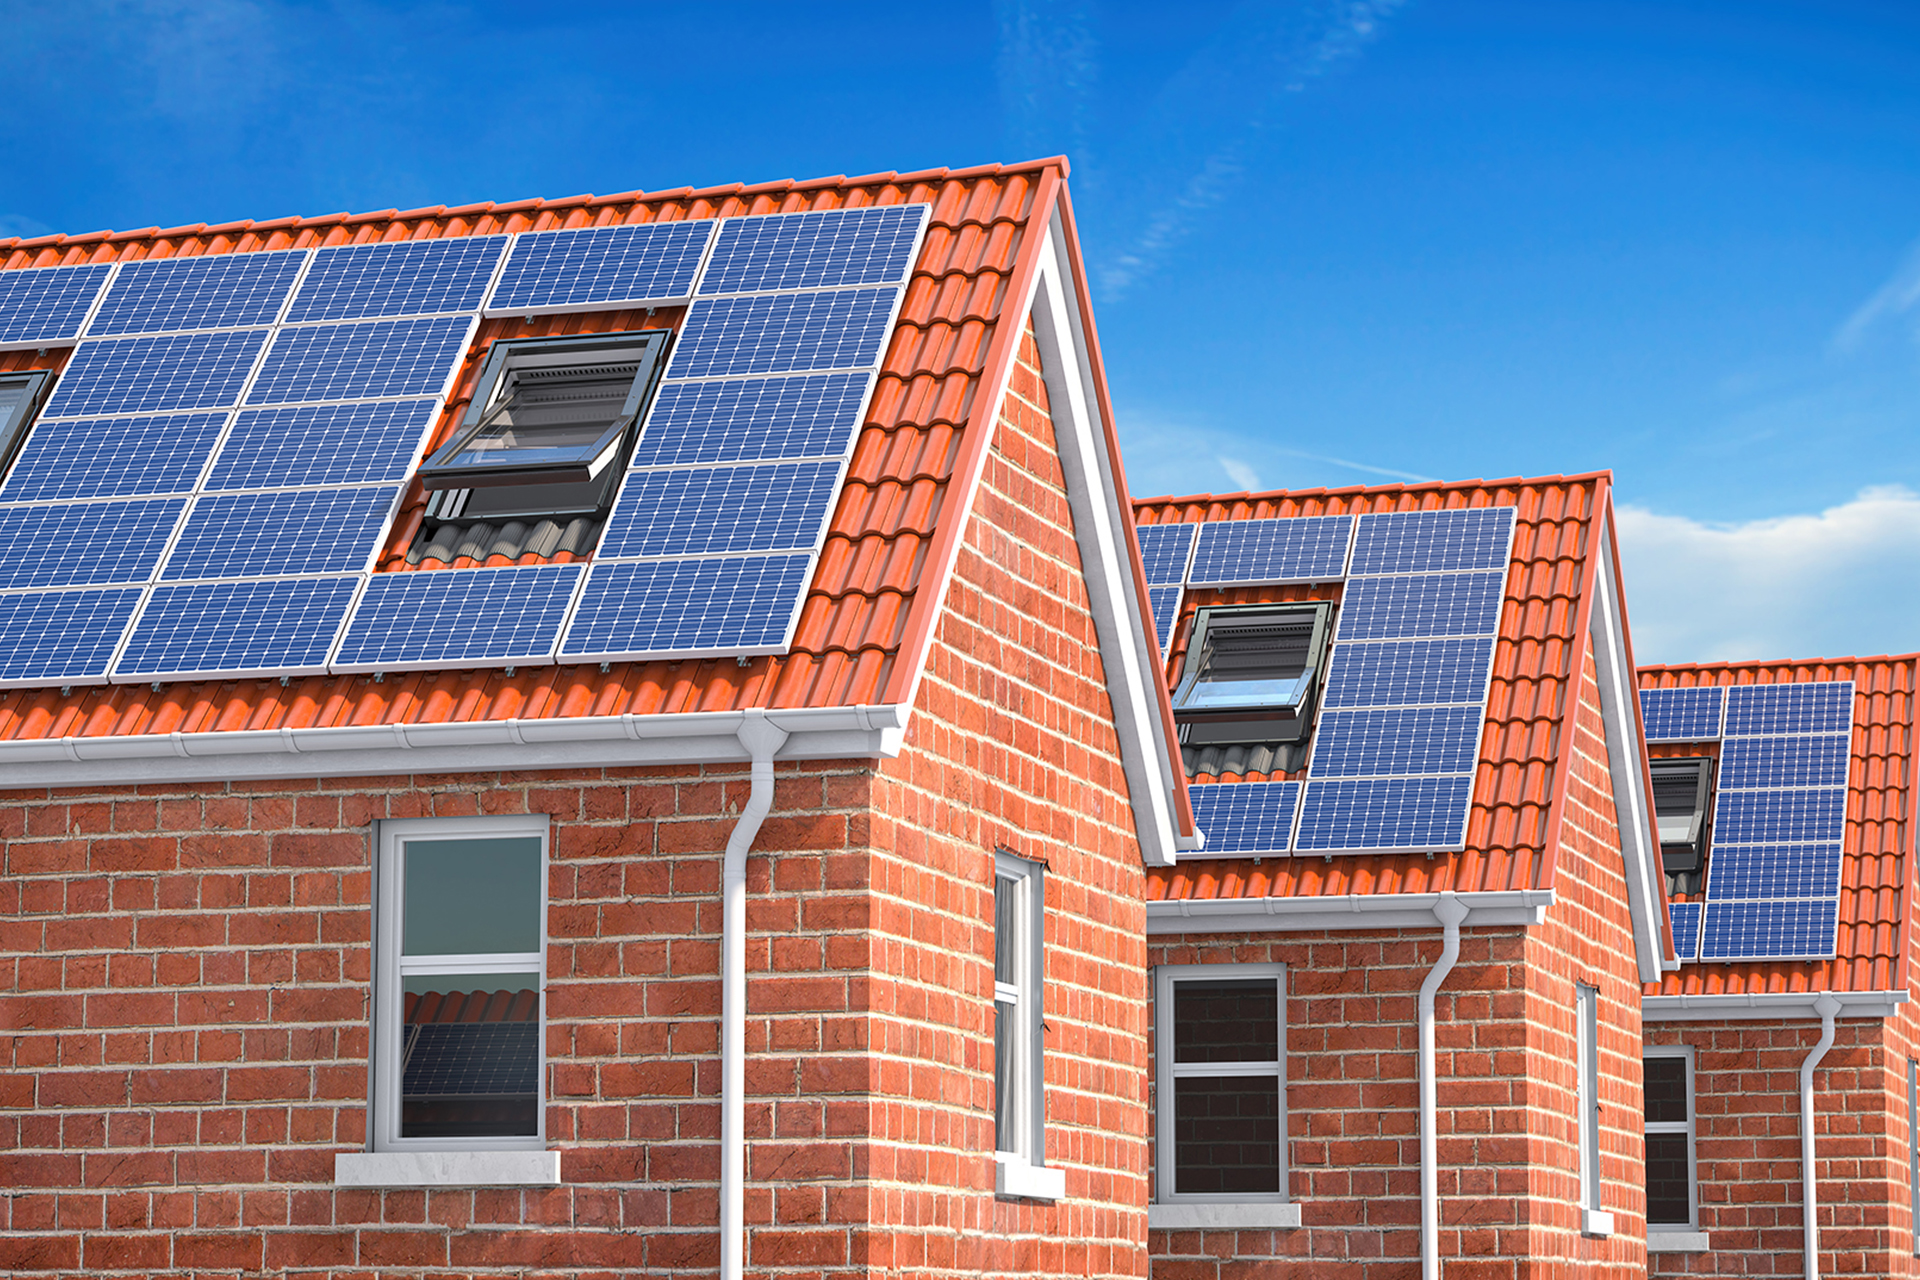 row-of-house-with-solar-panels-on